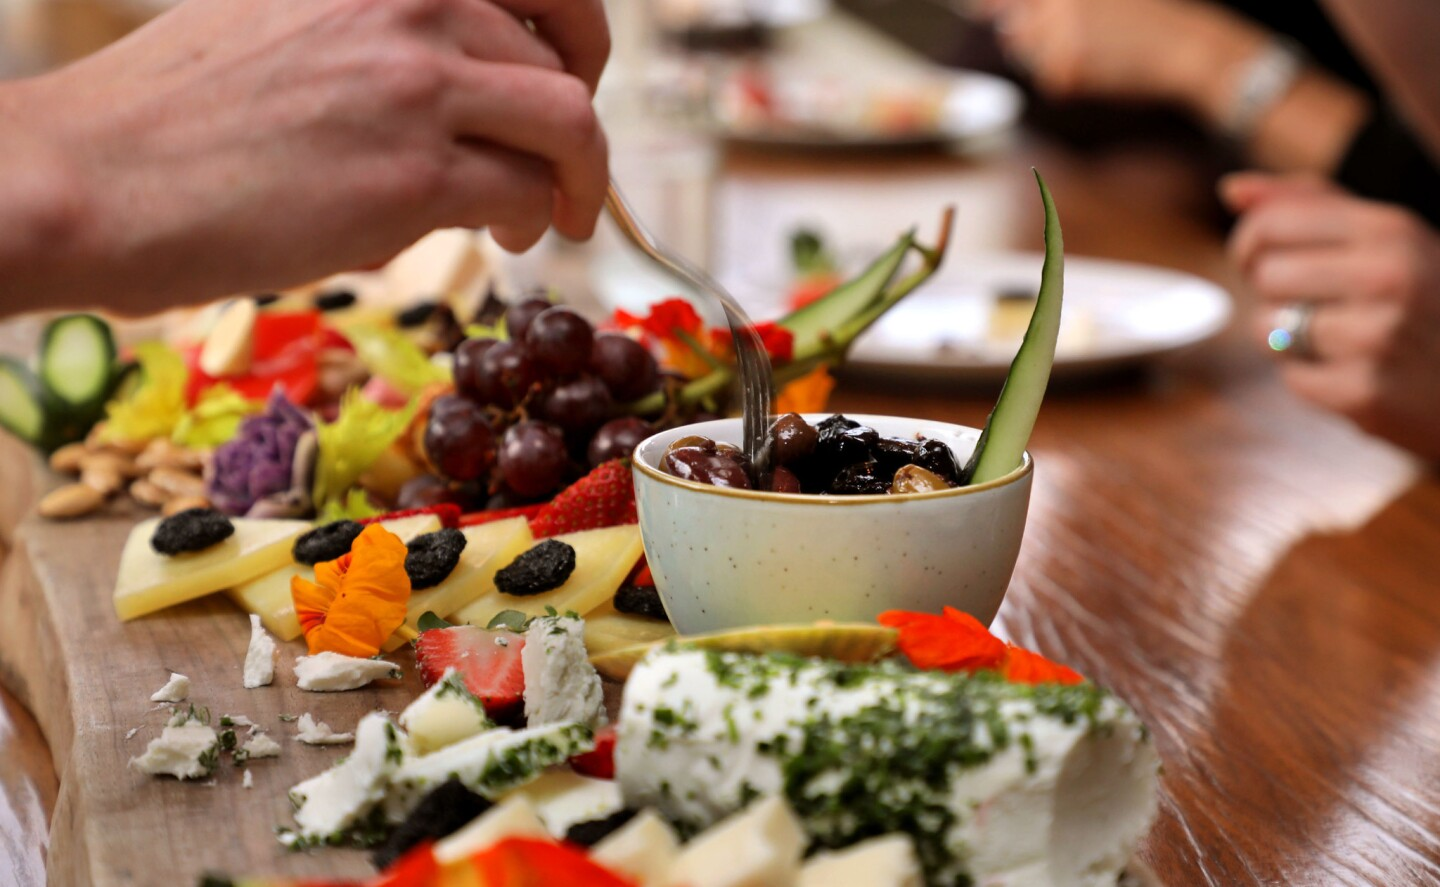 At the Four Season Residence Club a guest at the 10 seat Chef's Table reaches for food from a large Mezze Board (a Mediterranean party platter) that features many types of food.